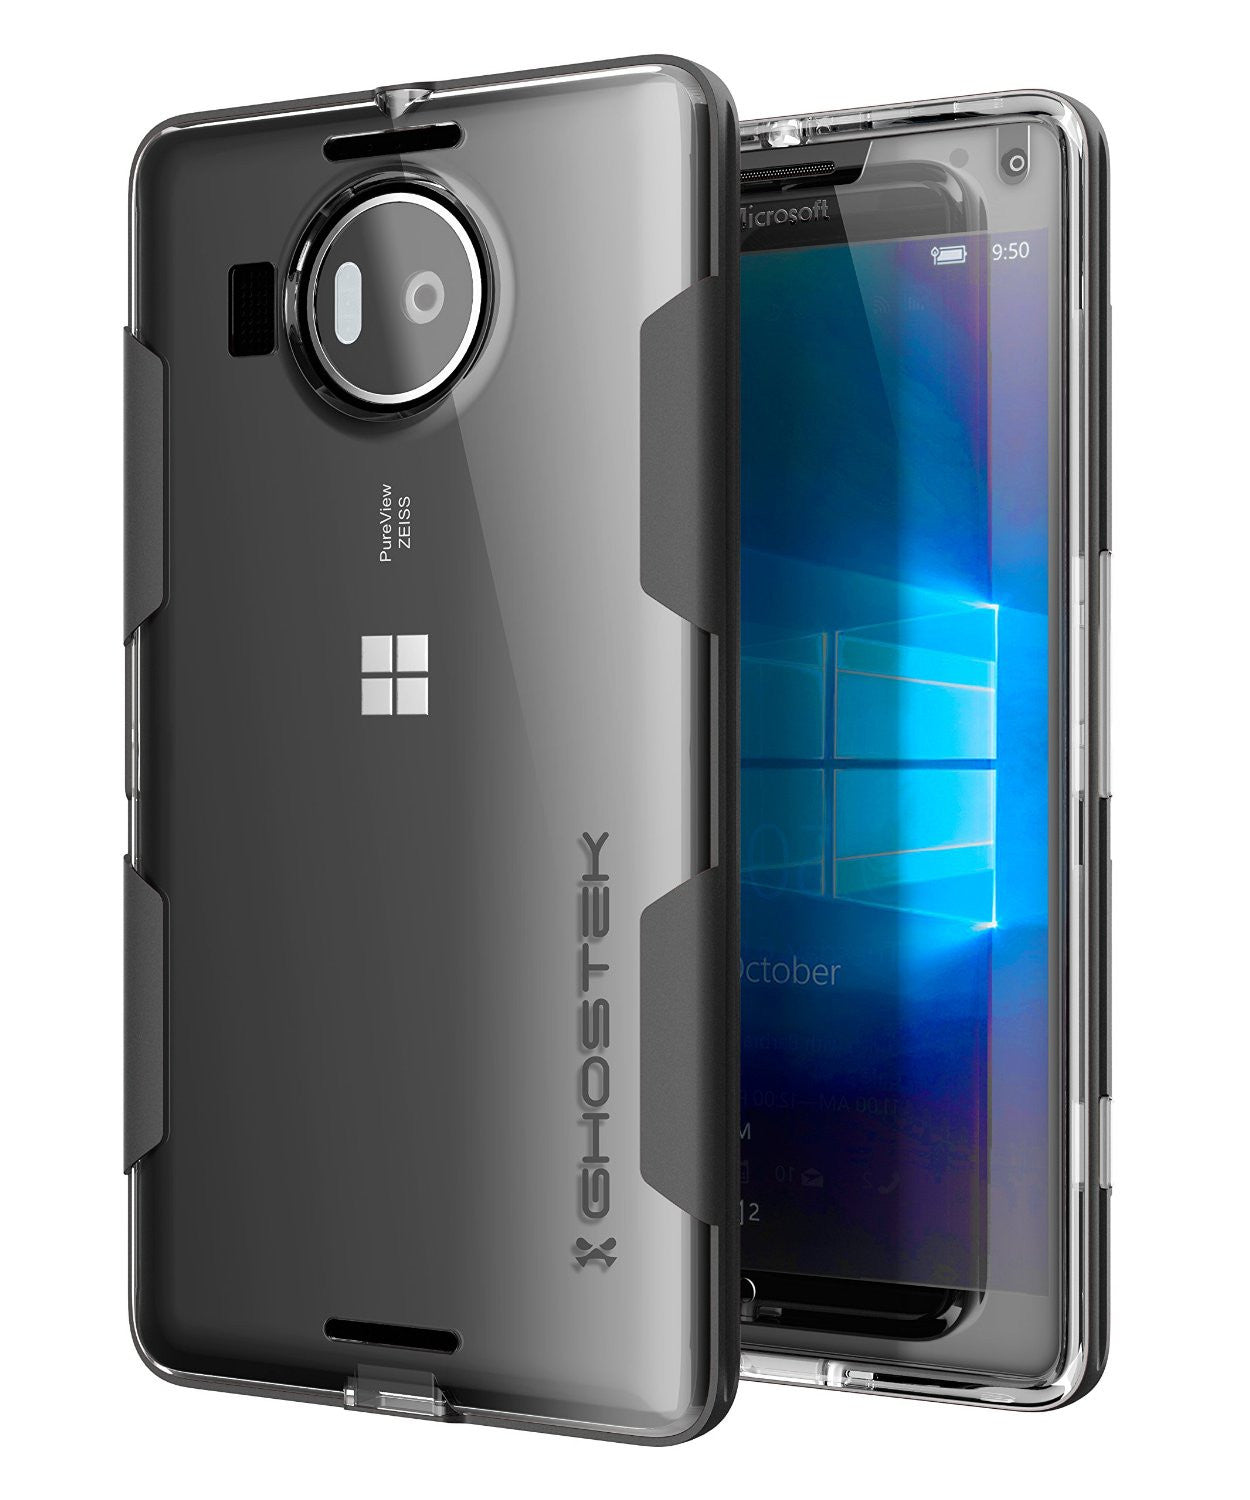 Microsoft Lumia 950 Case, Ghostek® Cloak Black Slim Hybrid Impact Armor | Lifetime Warranty Exchange